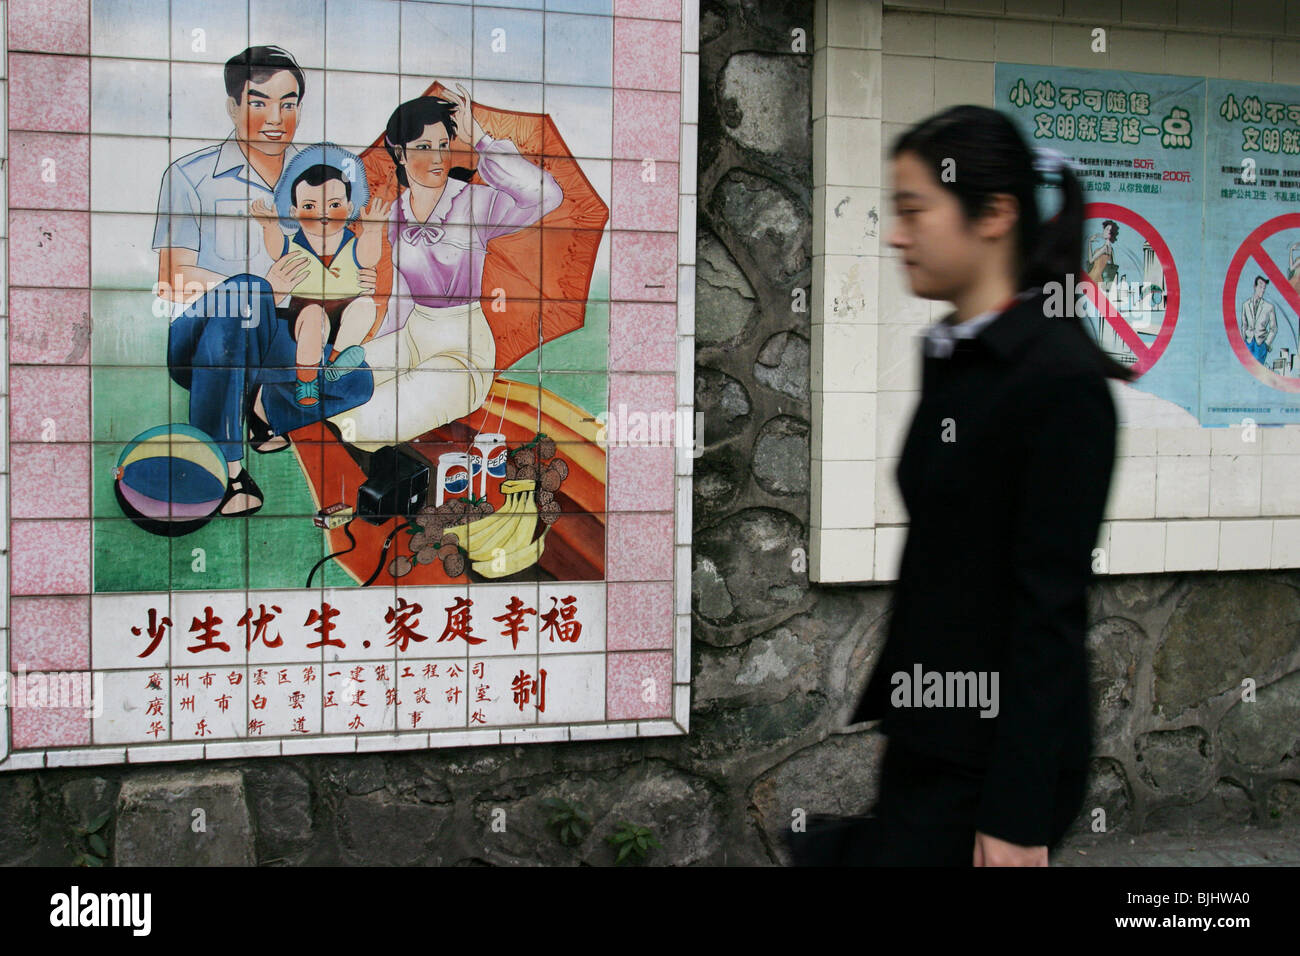 A tiled mural in a Guangzhou street advocates 'happy families', and China's 'one child' policy - Stock Image